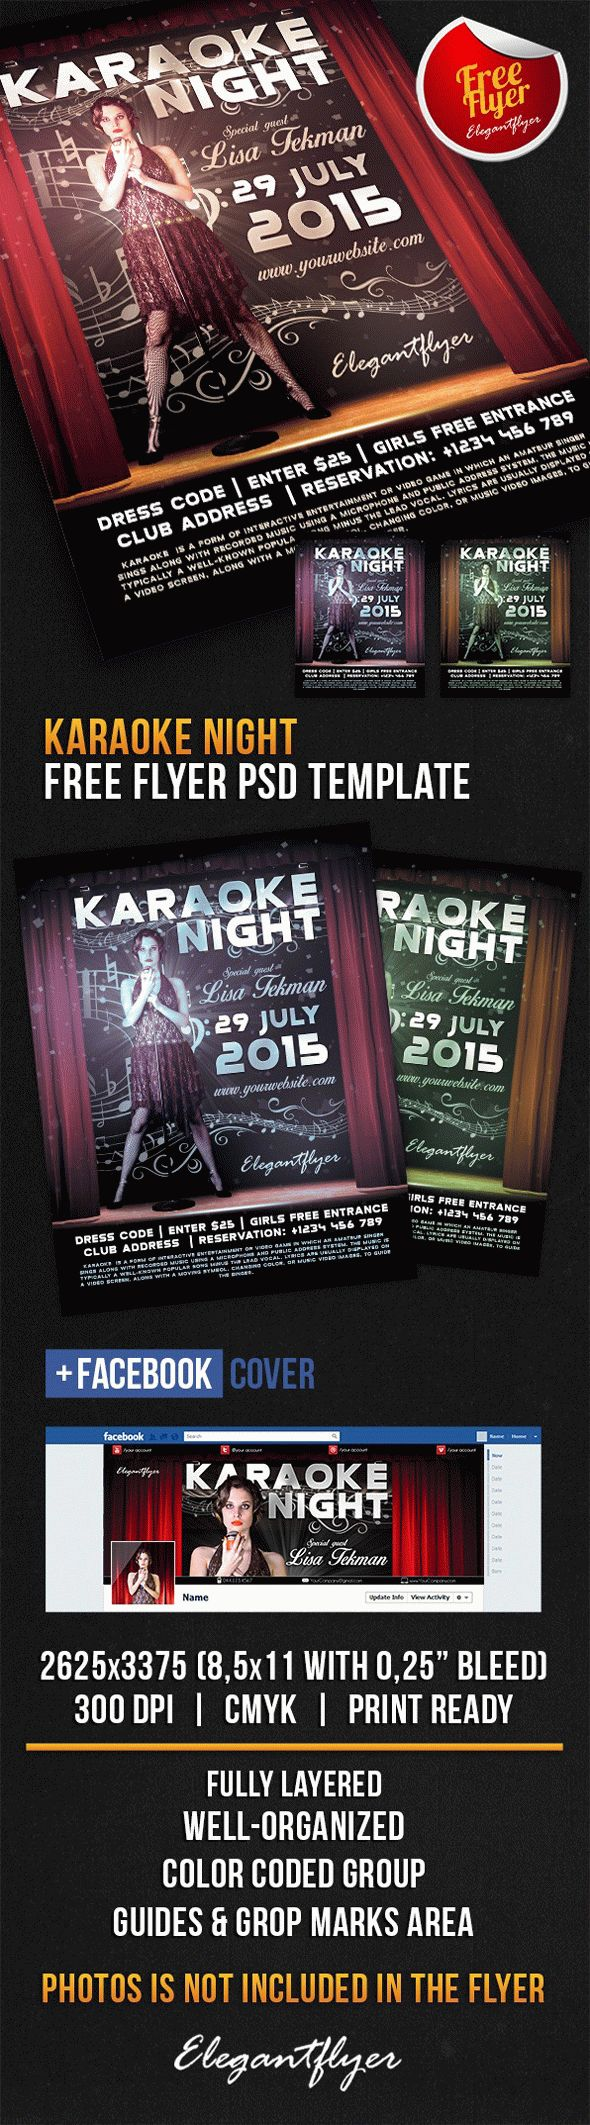 Karaoke Night – Free Flyer PSD Template